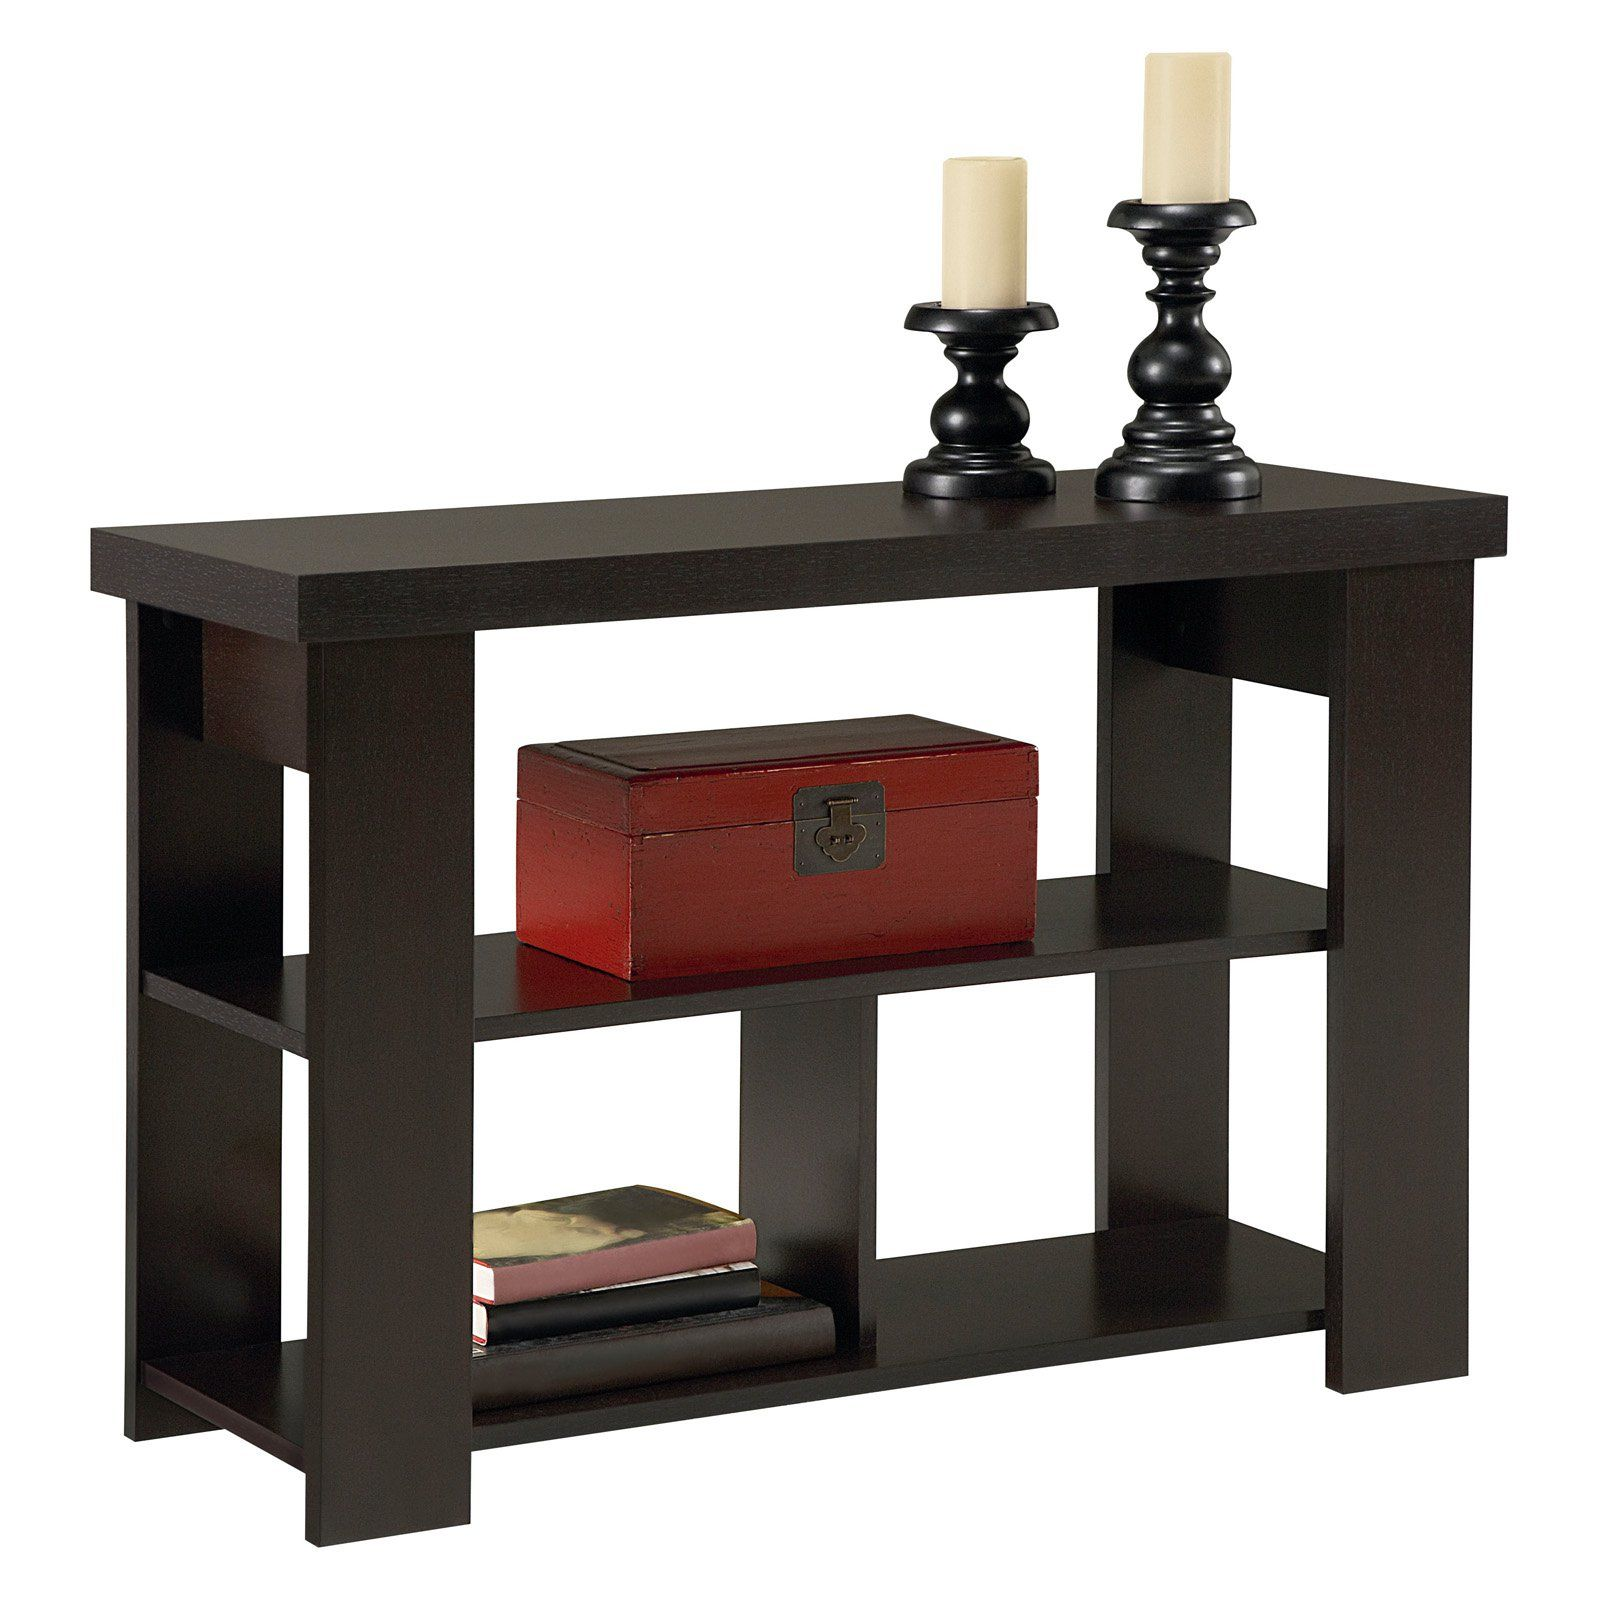 Tremendous Ameriwood Hollow Core Sofa Table Products In 2019 Wood Spiritservingveterans Wood Chair Design Ideas Spiritservingveteransorg